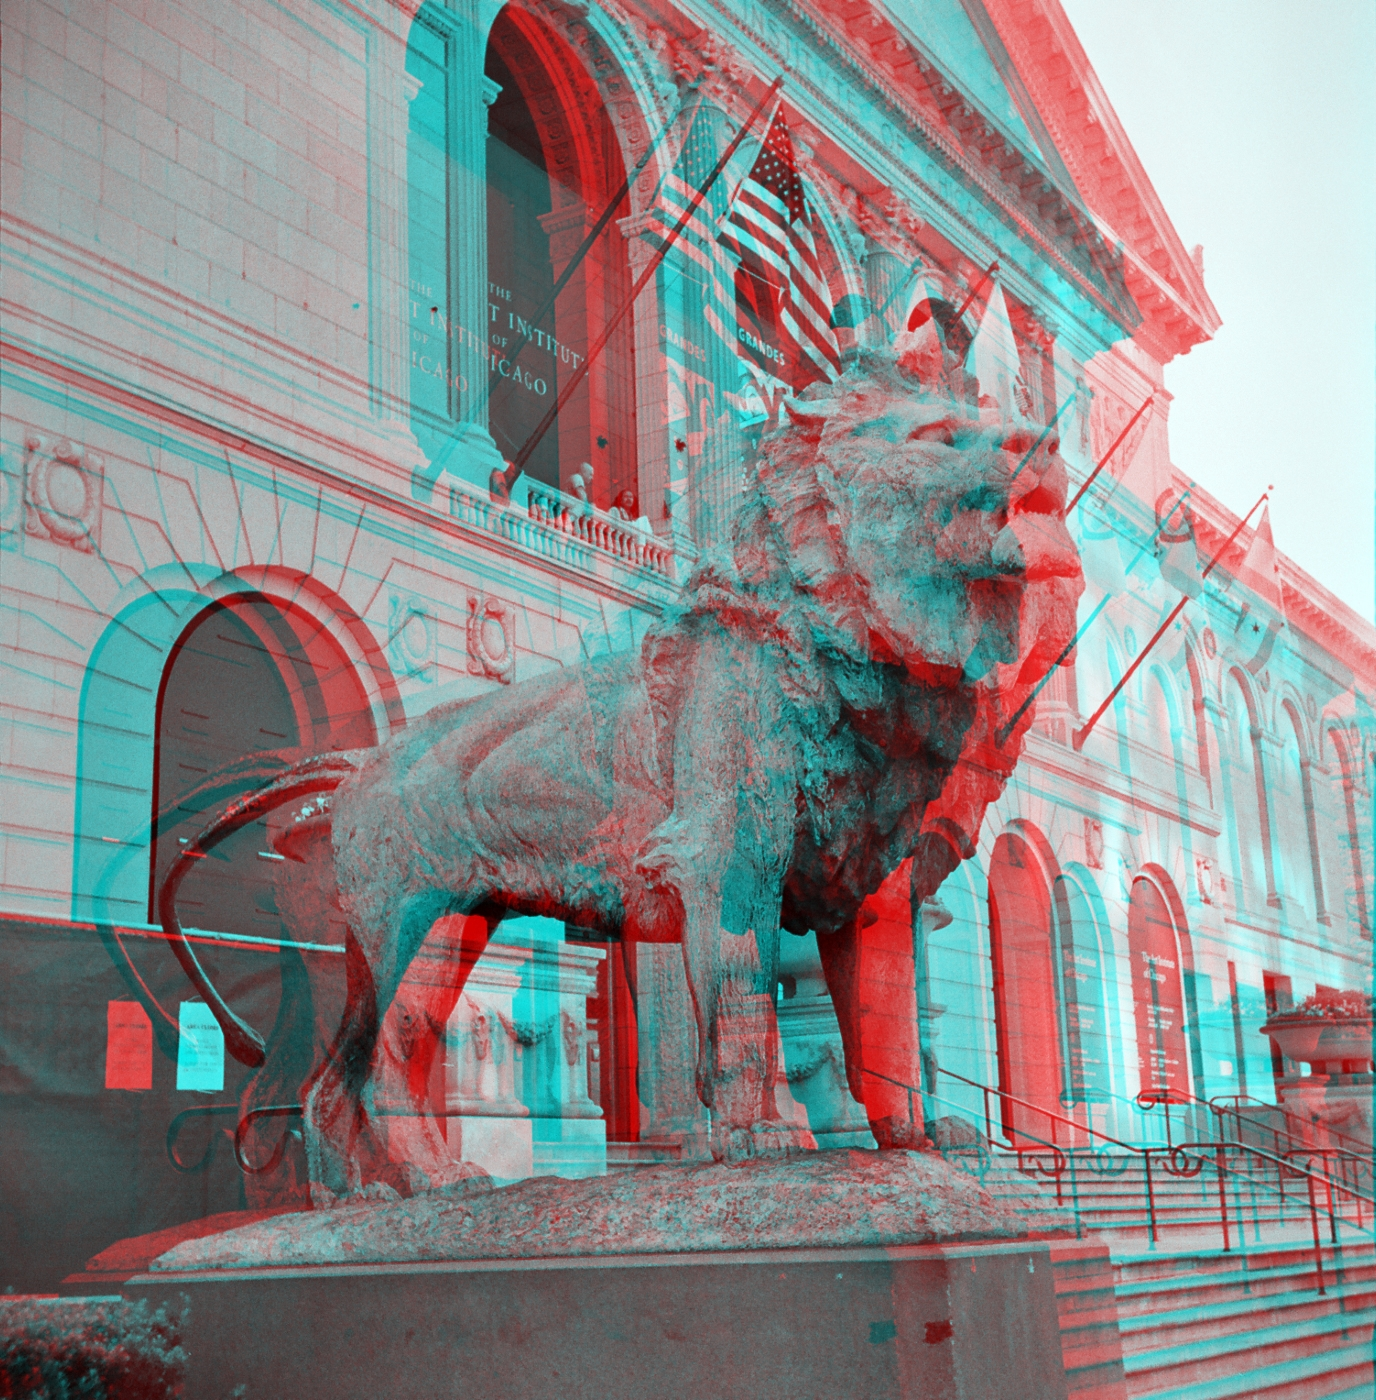 http://upload.wikimedia.org/wikipedia/commons/d/d7/Art_Institute_of_Chicago_Lion_Statue_%28anaglyph_stereo%29.jpg